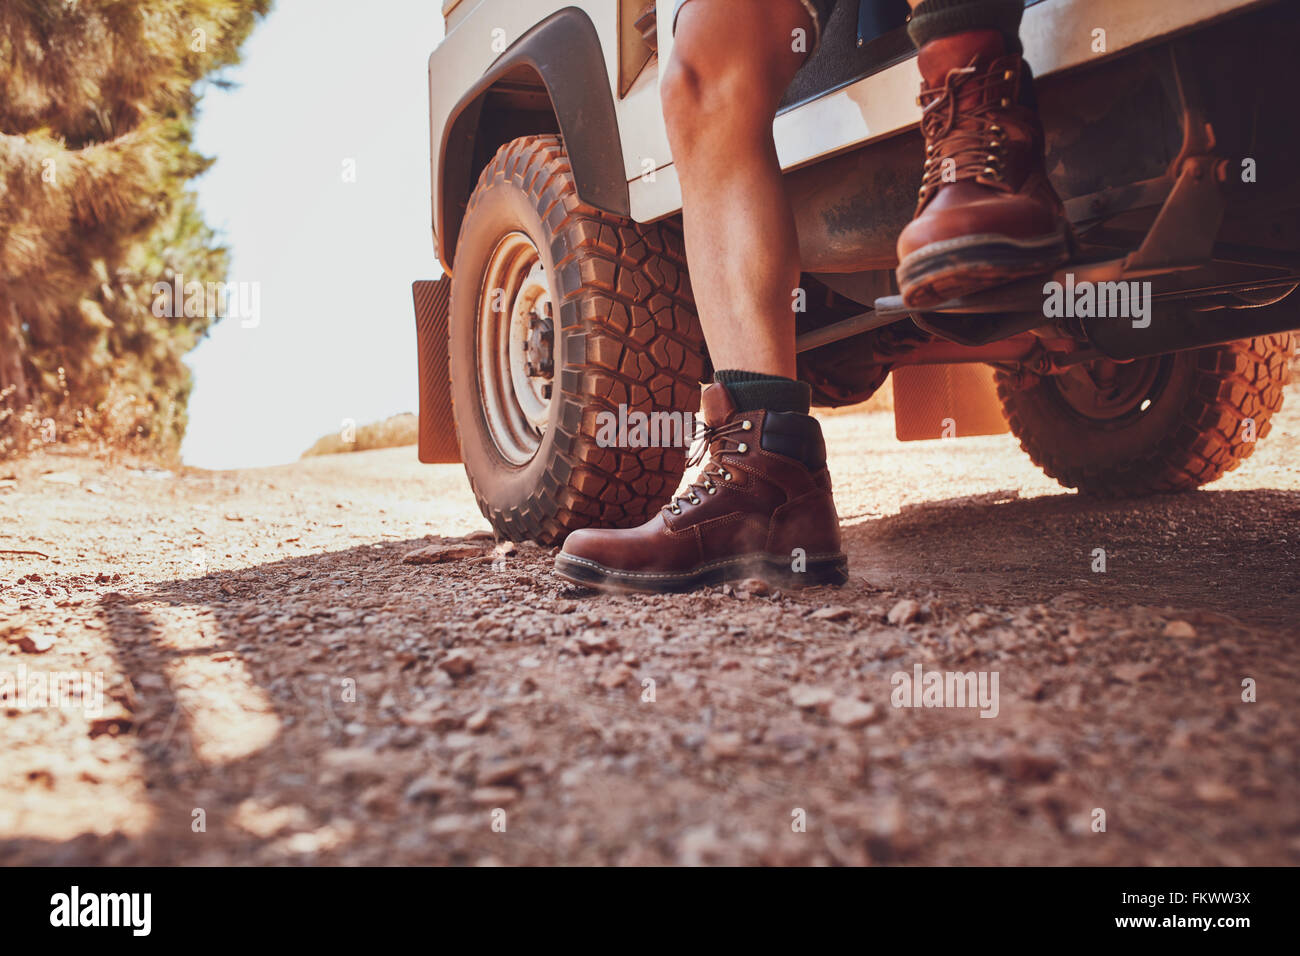 Close up of male leg with leather boot stepping out of a off road vehicle. Car parked on the dirt road in countryside. Stock Photo